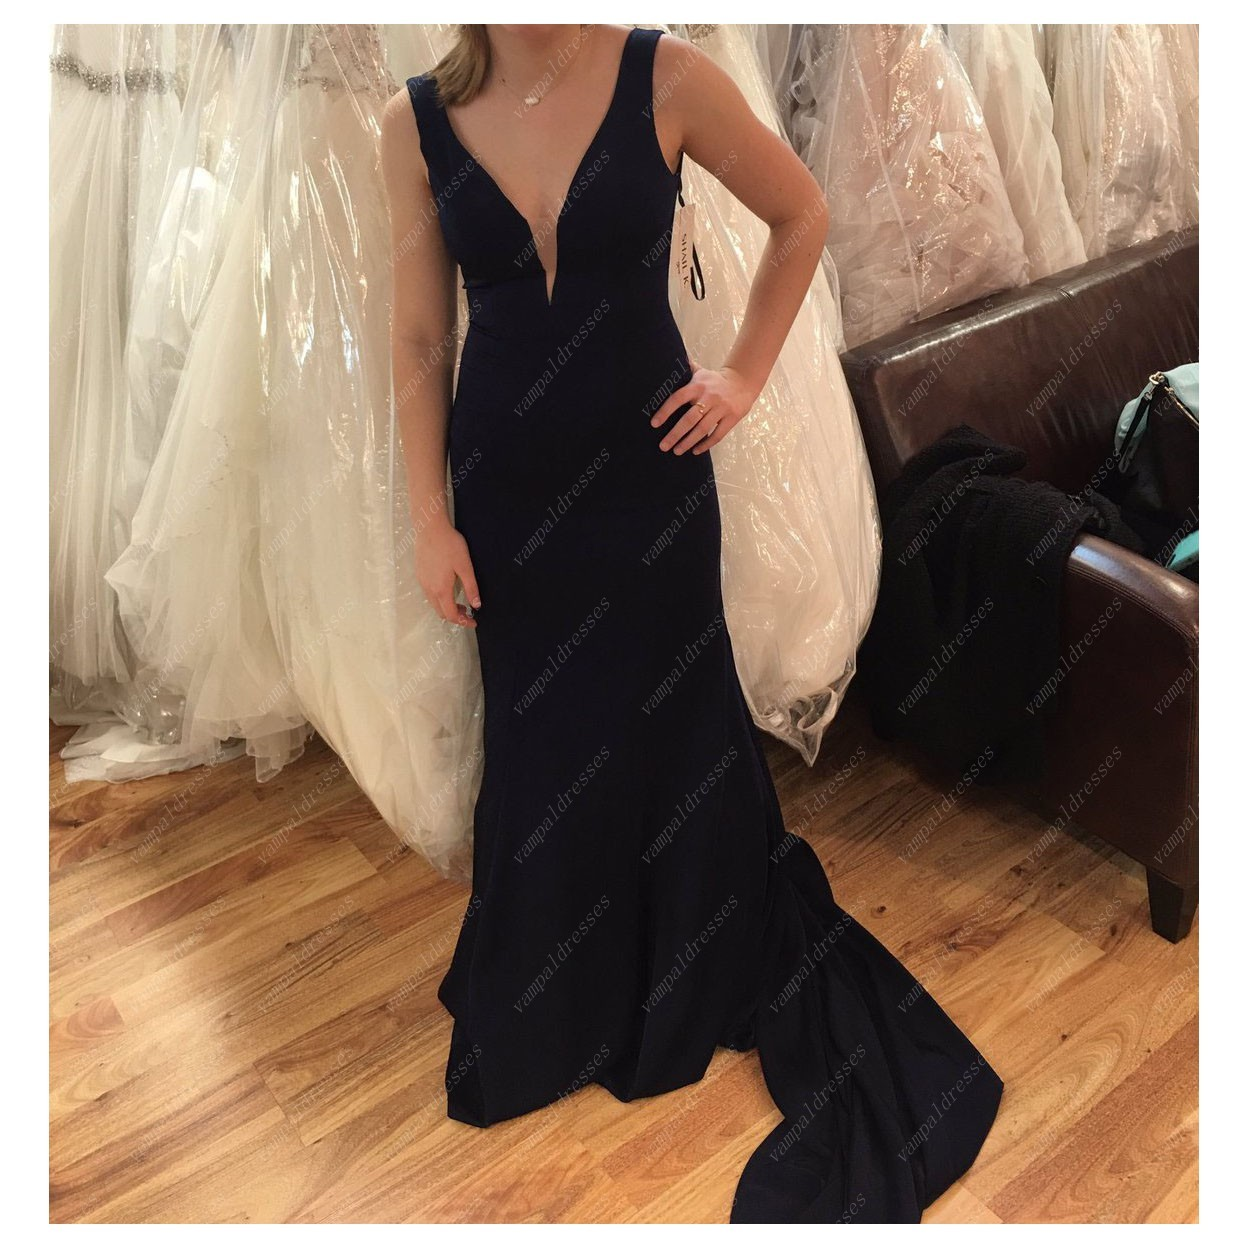 Primary image for Simple Sleeveless Black Deep V-Neck Satin Prom Dress With Open Back